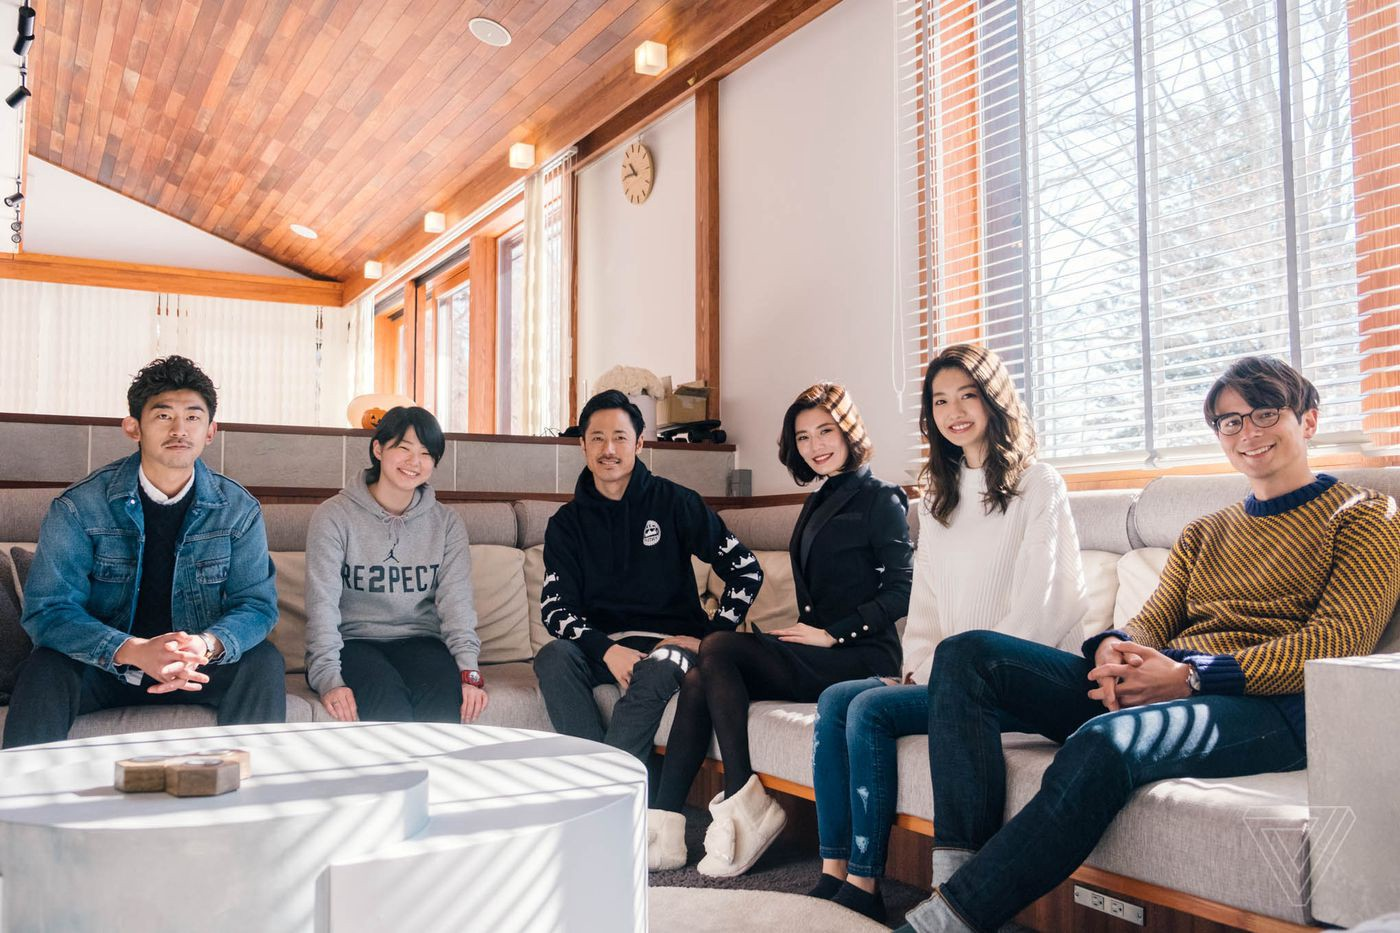 Six young adults sit in a spacious living room, smiling at the camera.